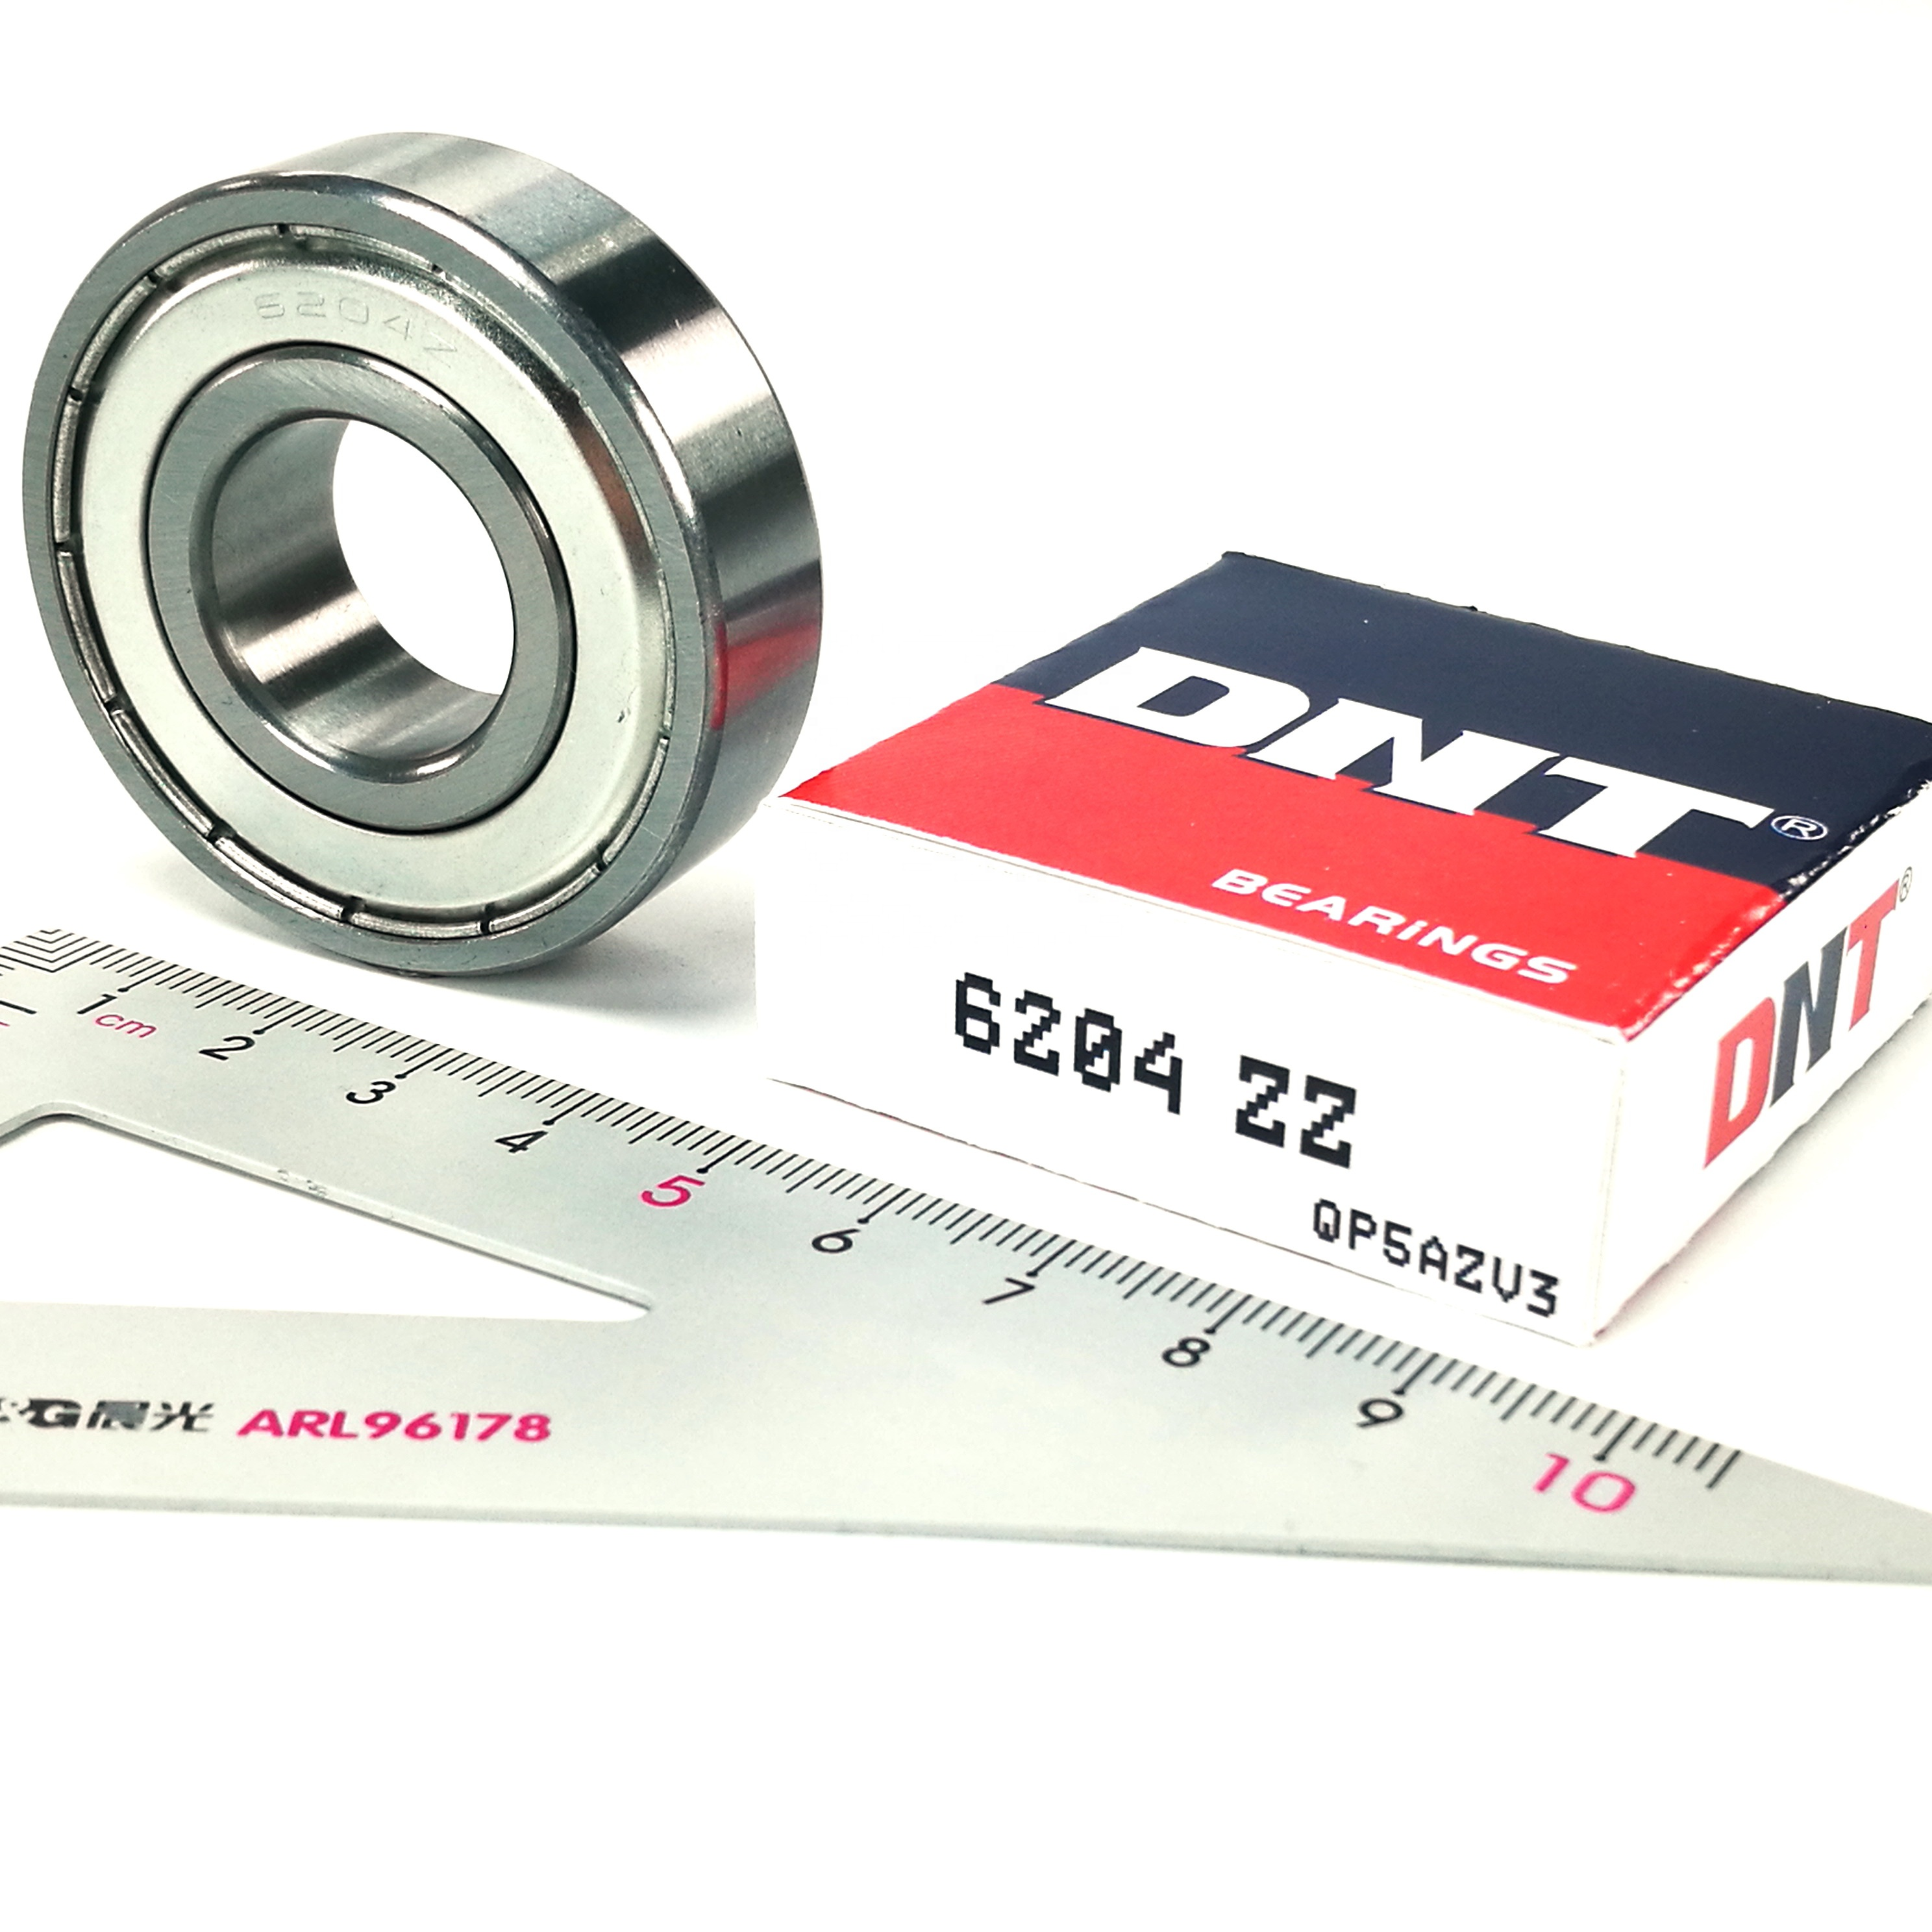 DNT EMQ Z3V3 Quality 6204 2RS 6204 OPEN 6204ZZ Ball <strong>Bearings</strong>